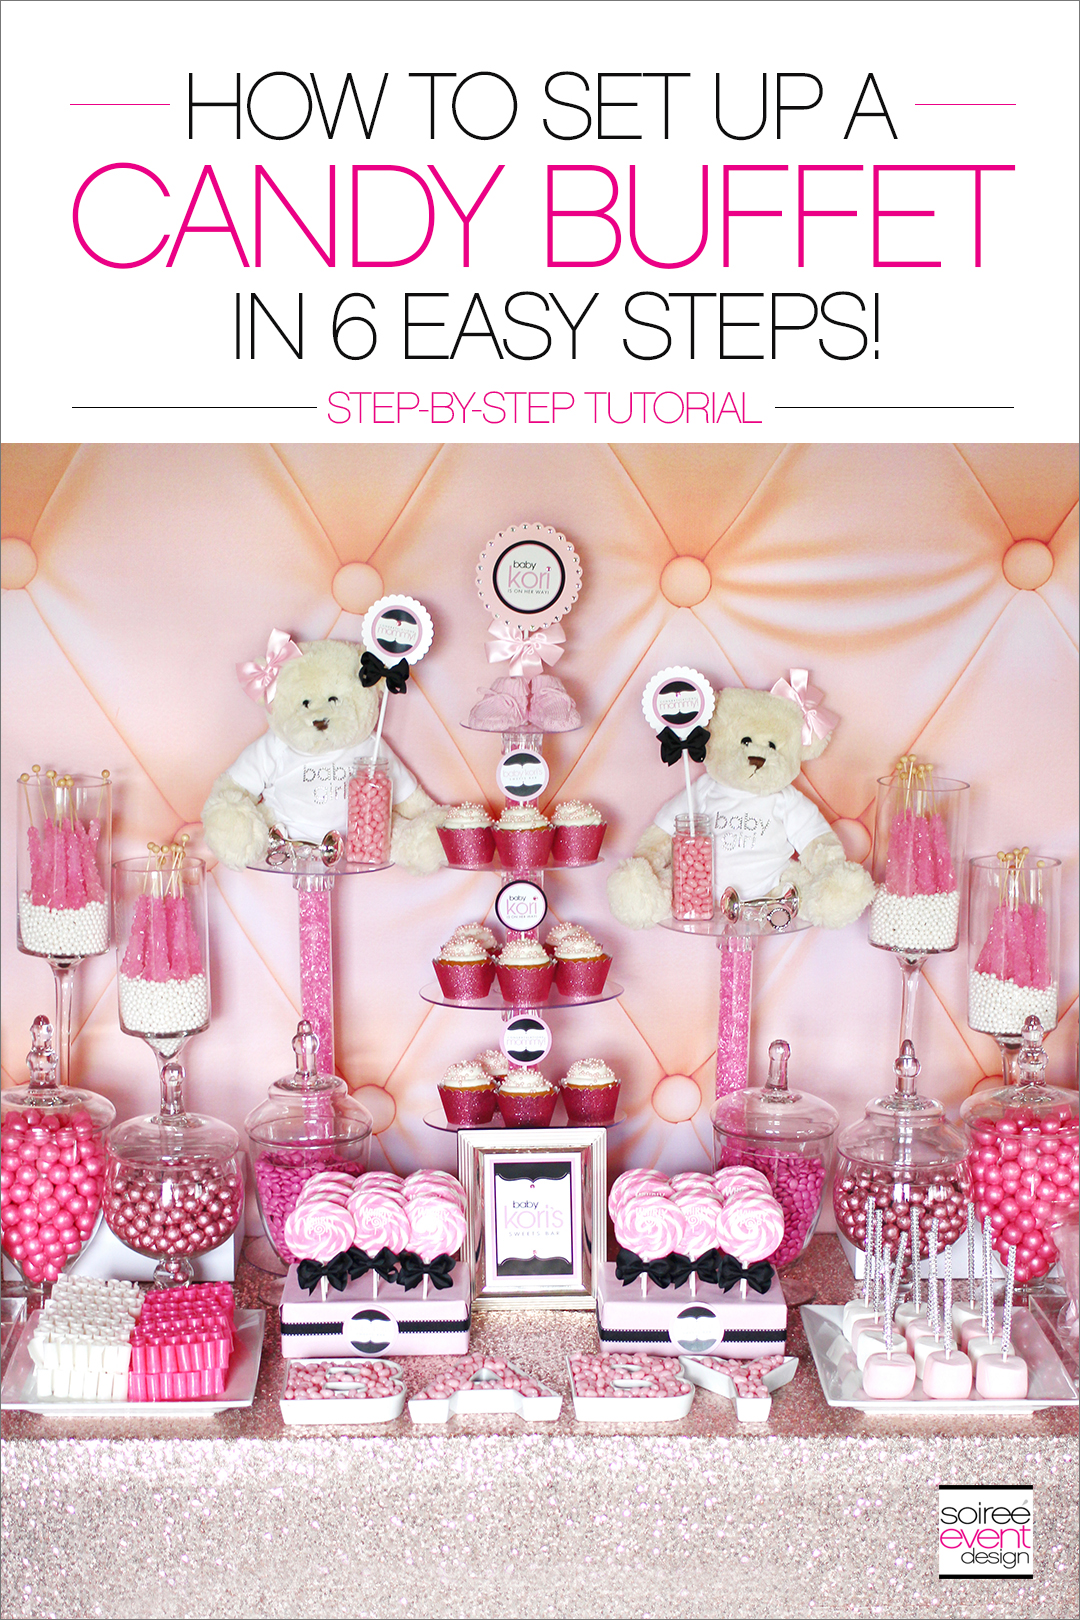 Learn how to set up a candy buffet step-by-step!  AND...ever wonder how much a candy buffet really costs?  Find out here. #candybuffet #soireeeventdesign #desserttables #babyshowers #candybar #candytable